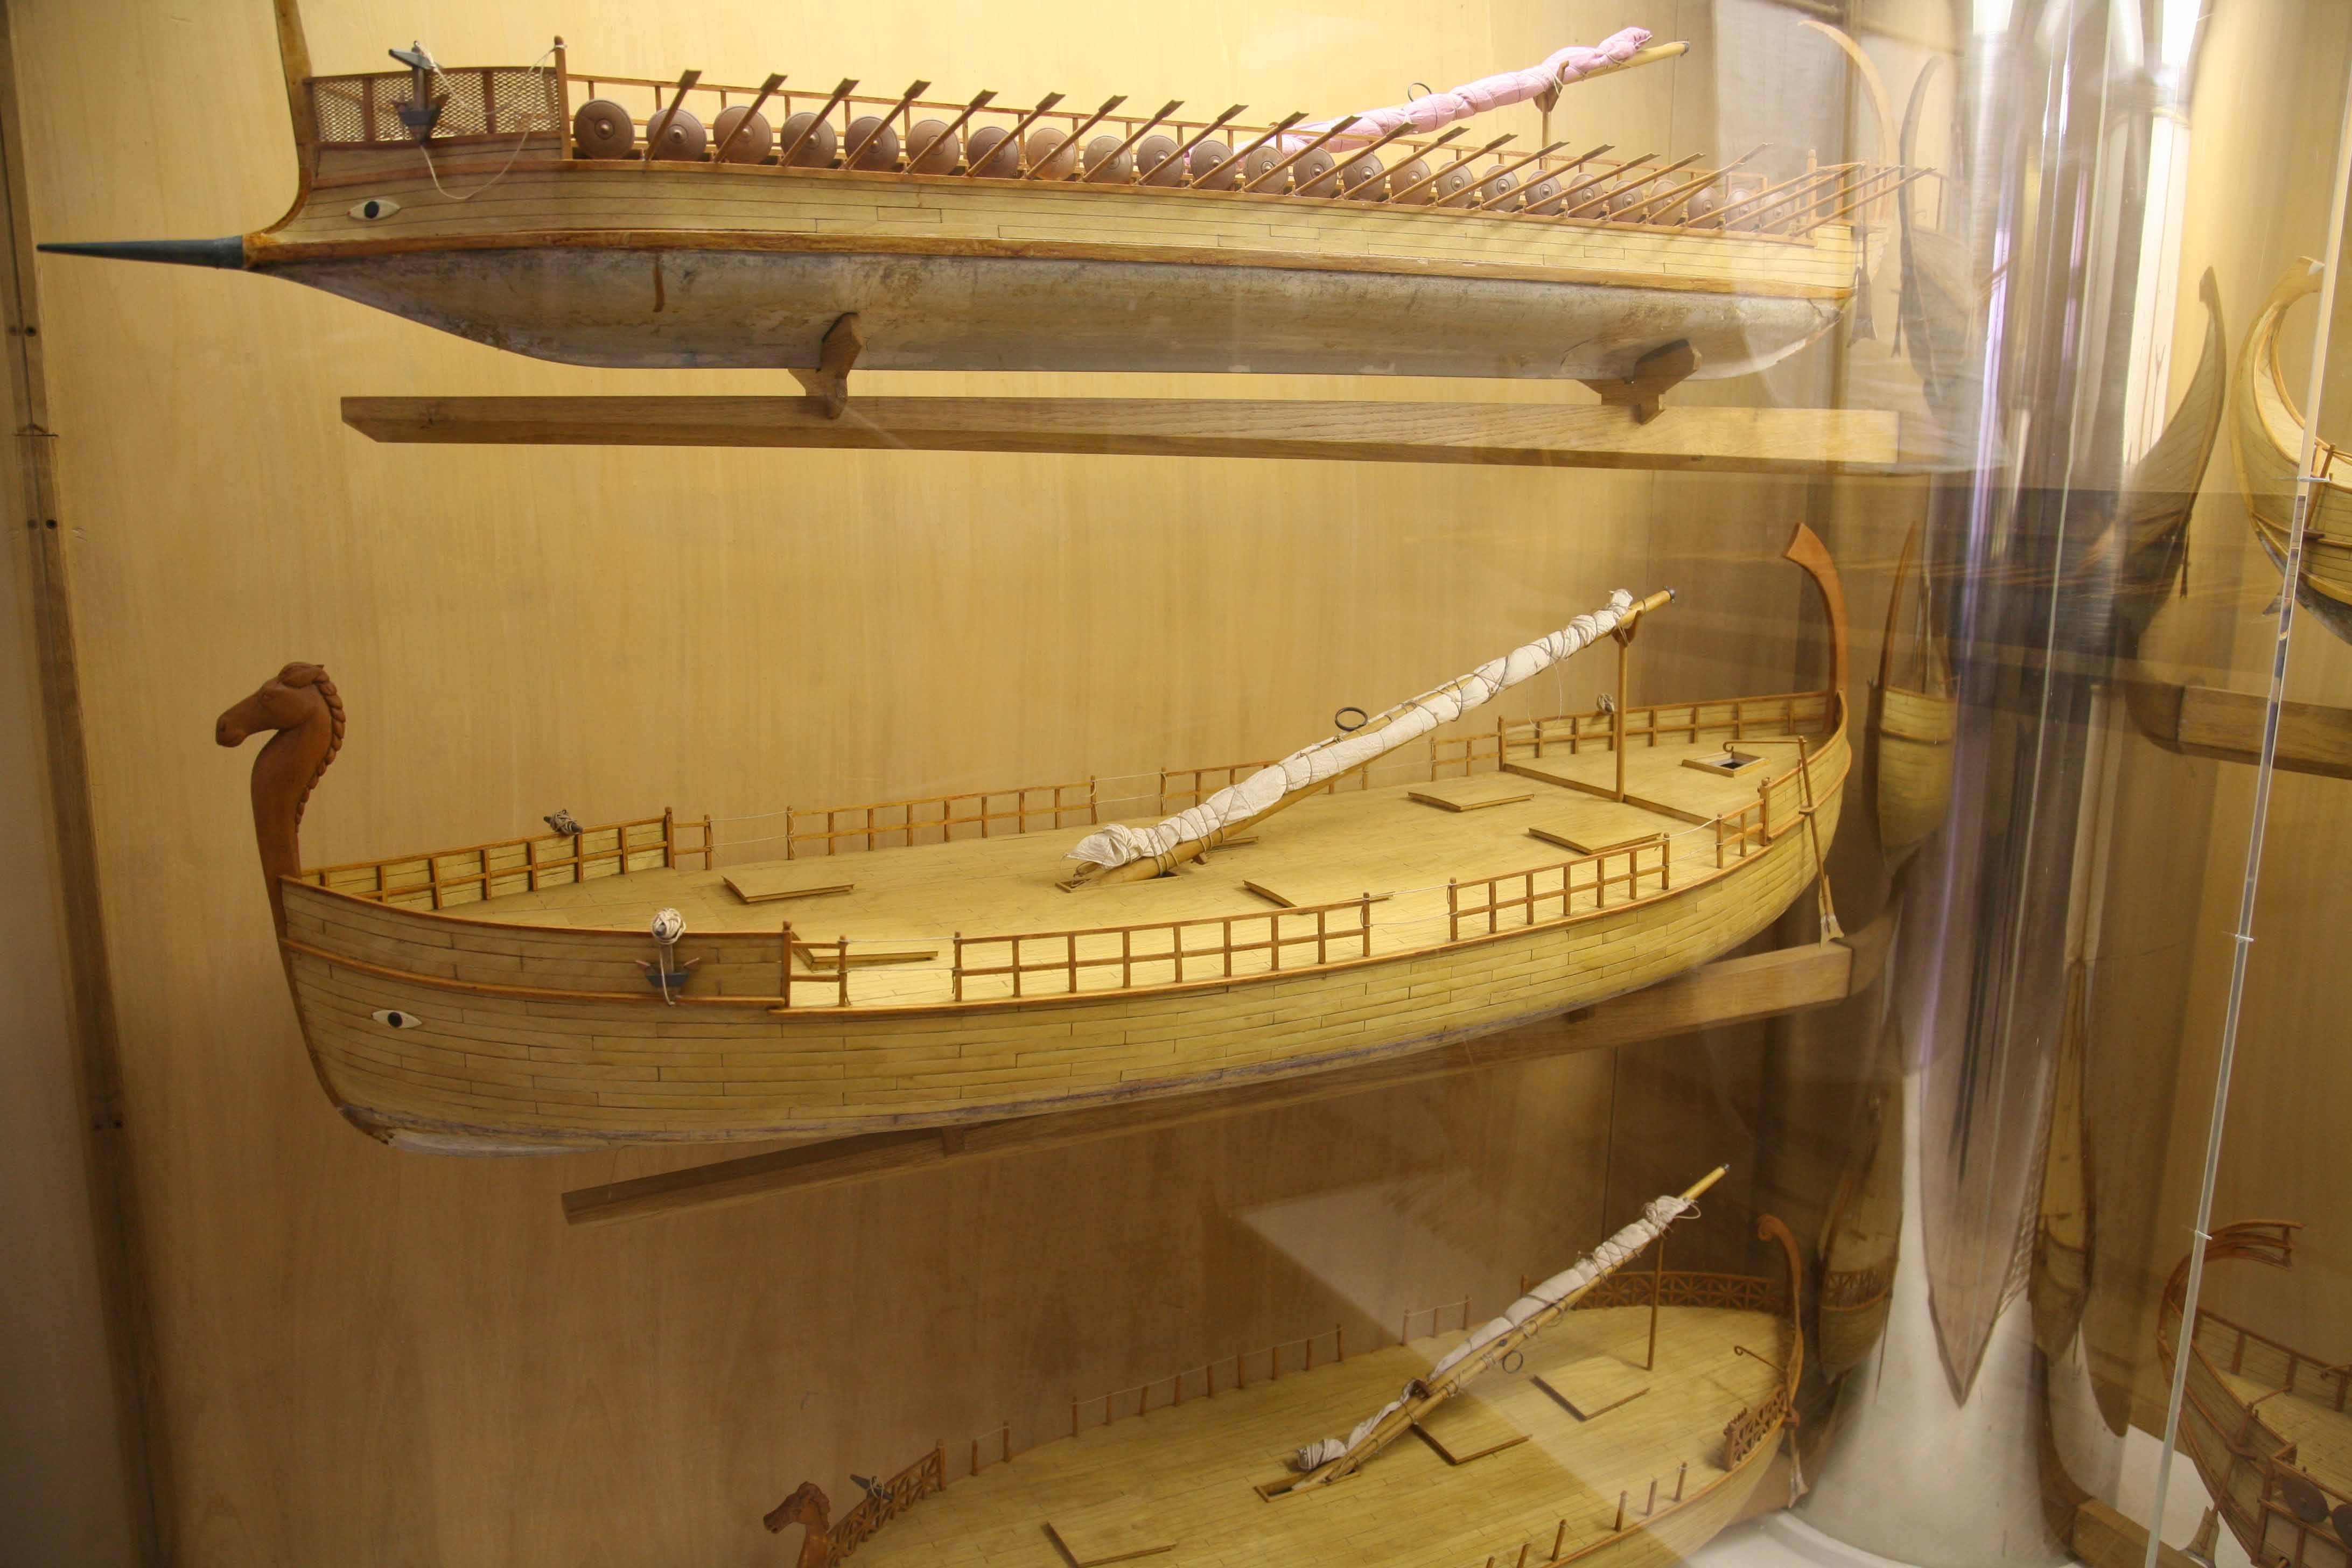 Photos of Models of Phoenician Ships 7th century B.C., at ...